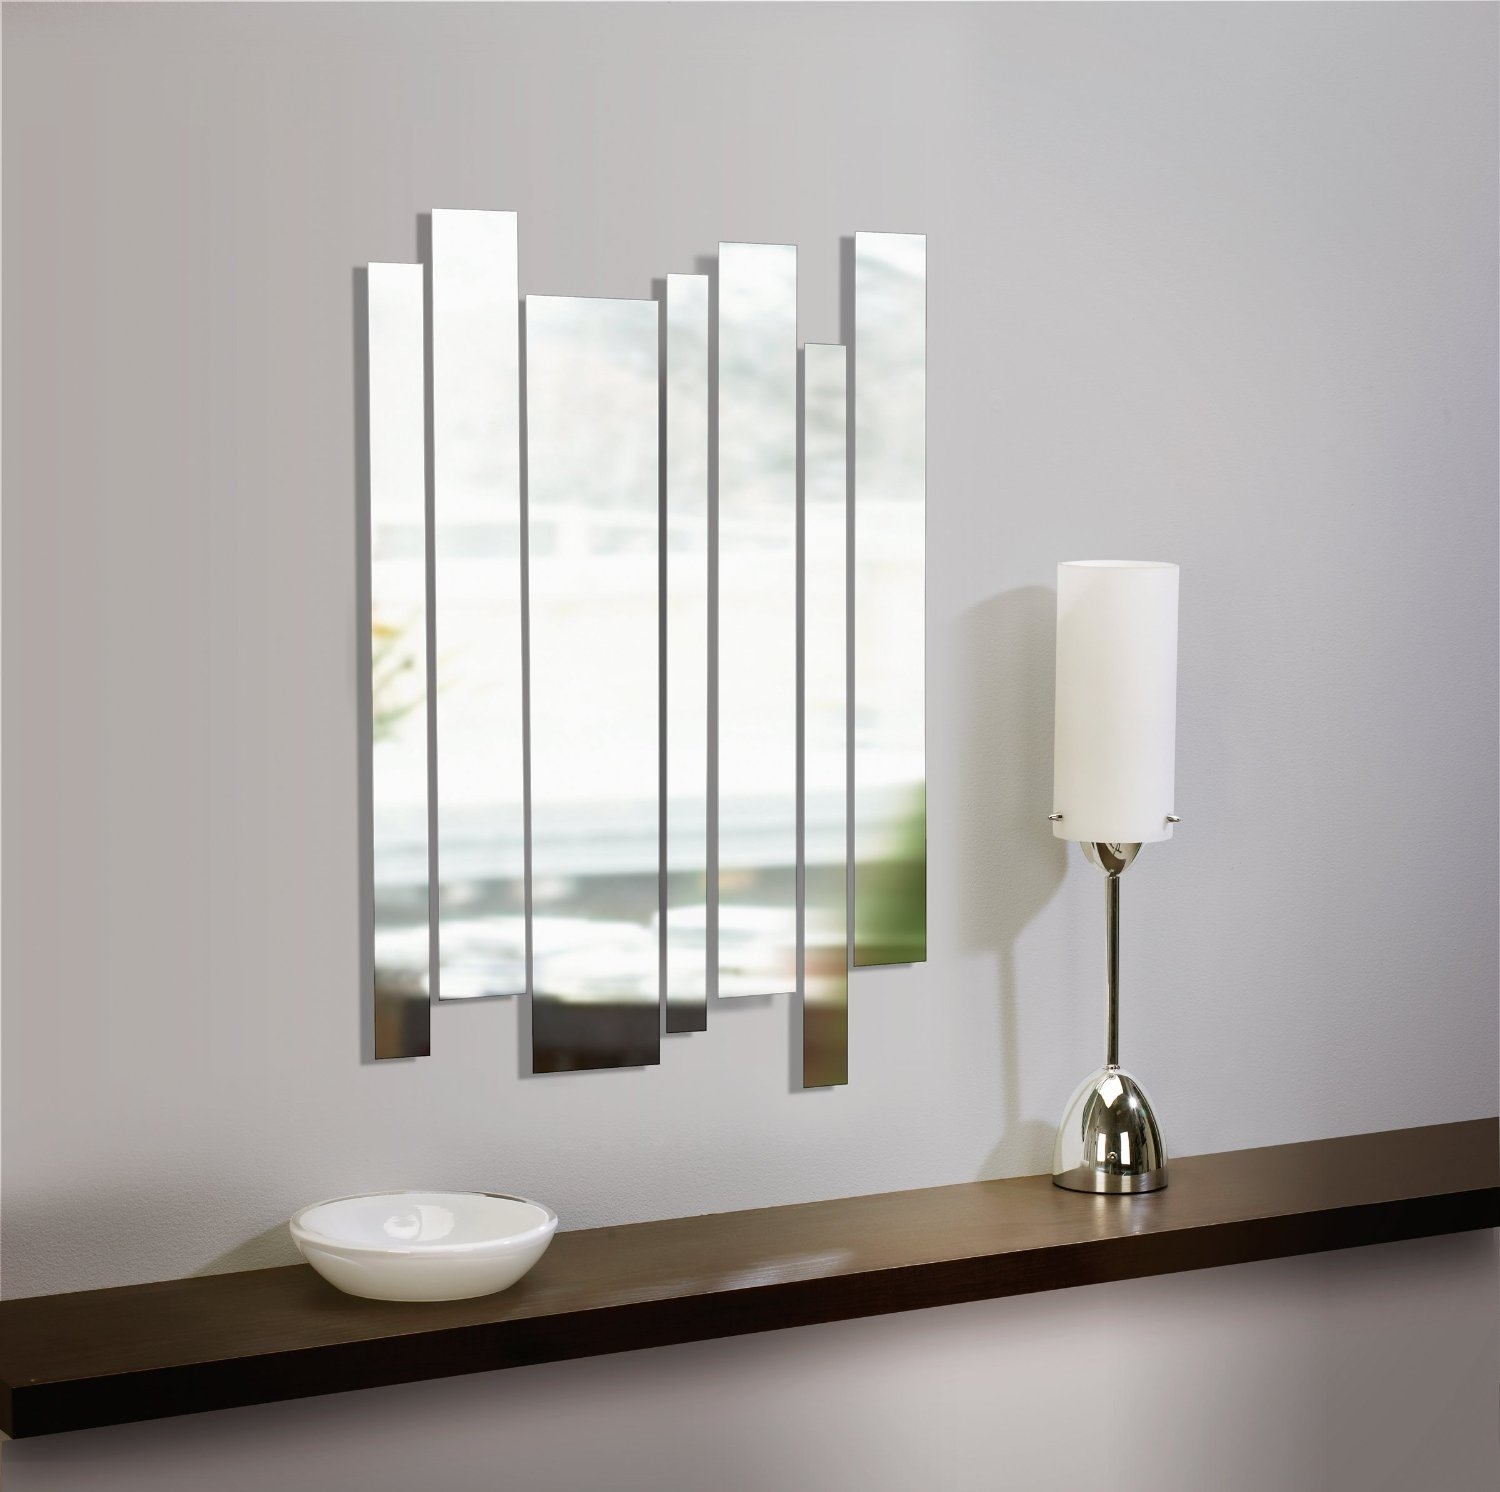 Contemporary Design Panel Wall Mirror Pretty Inspiration Ideas Intended For Funky Mirrors Image 3